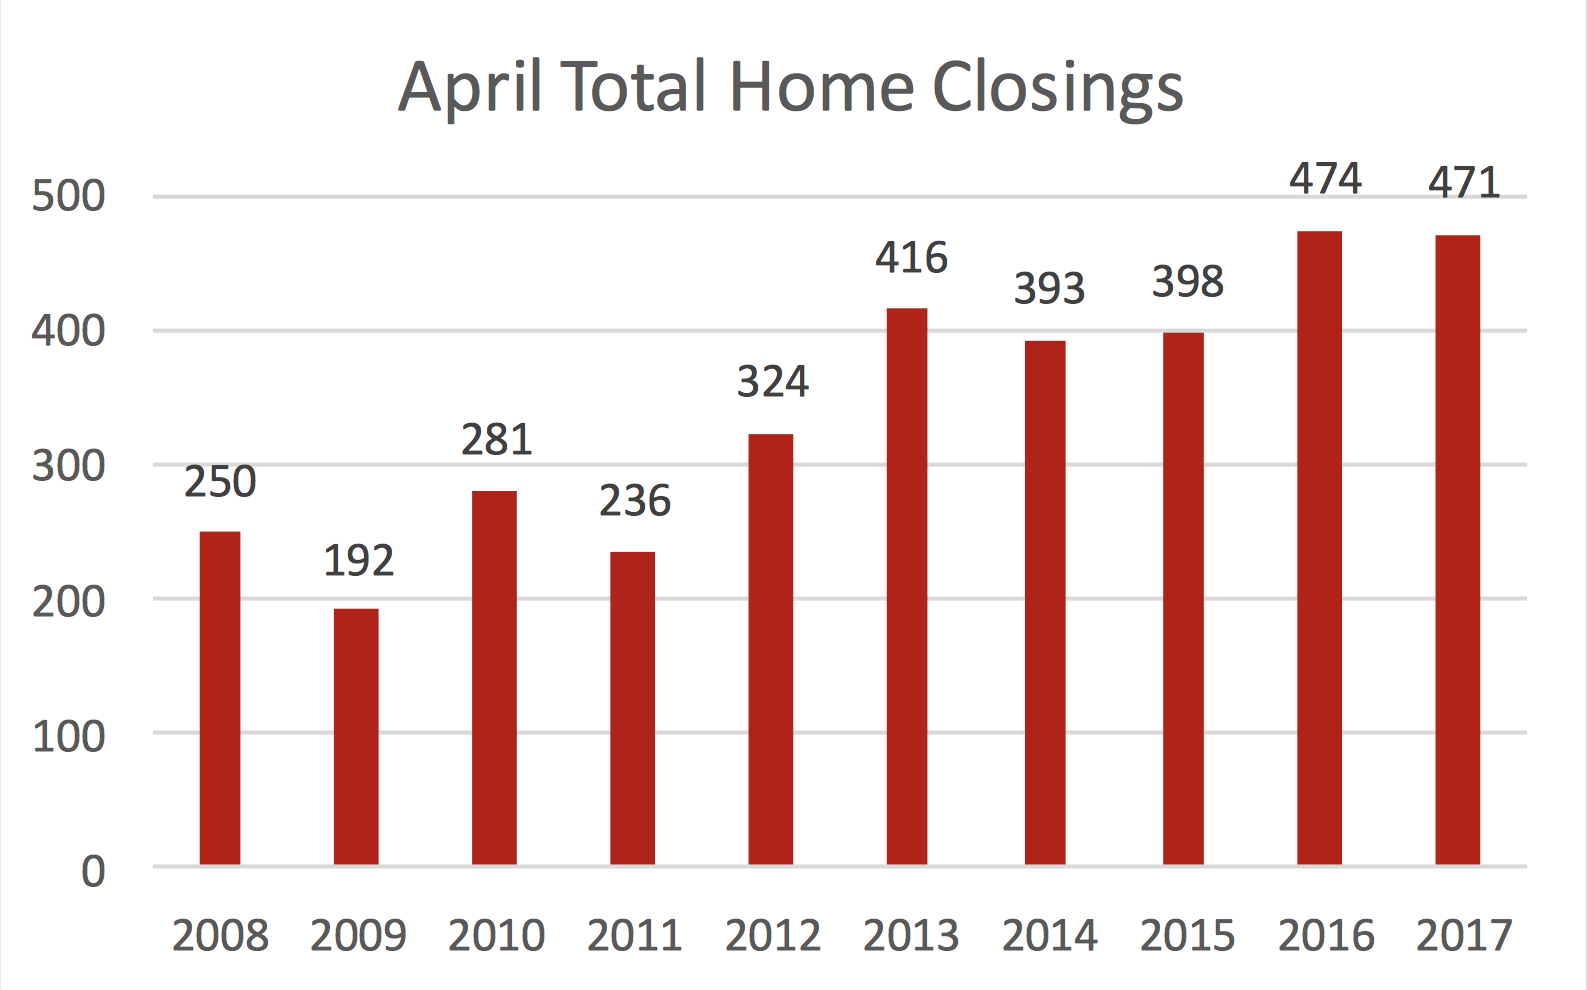 April Historical Total Home Closings in Williamson County